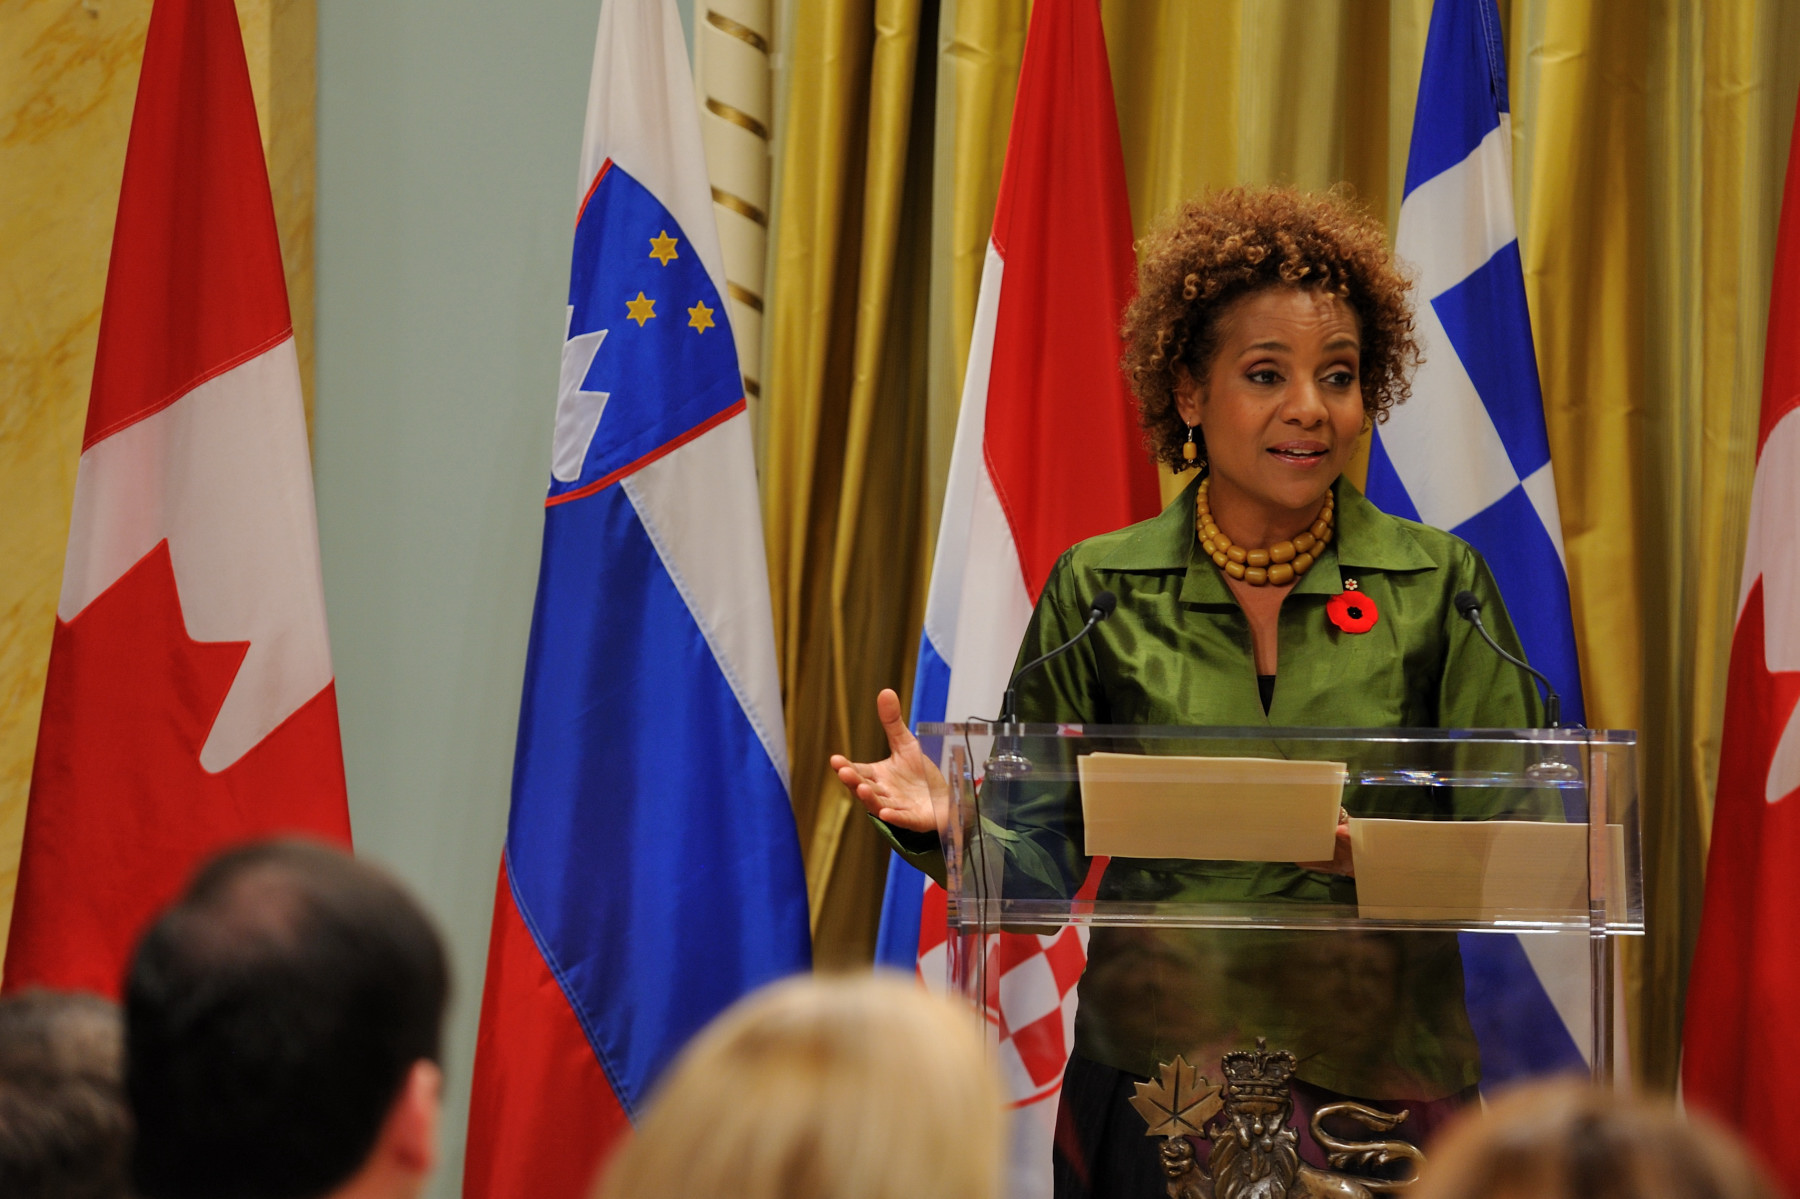 The Governor General announced she will be conducting visits to Slovenia, from October 21 to 22, a State to Croatia, from October 23 to 27, and Greece, from October 29 to 31, 2009.